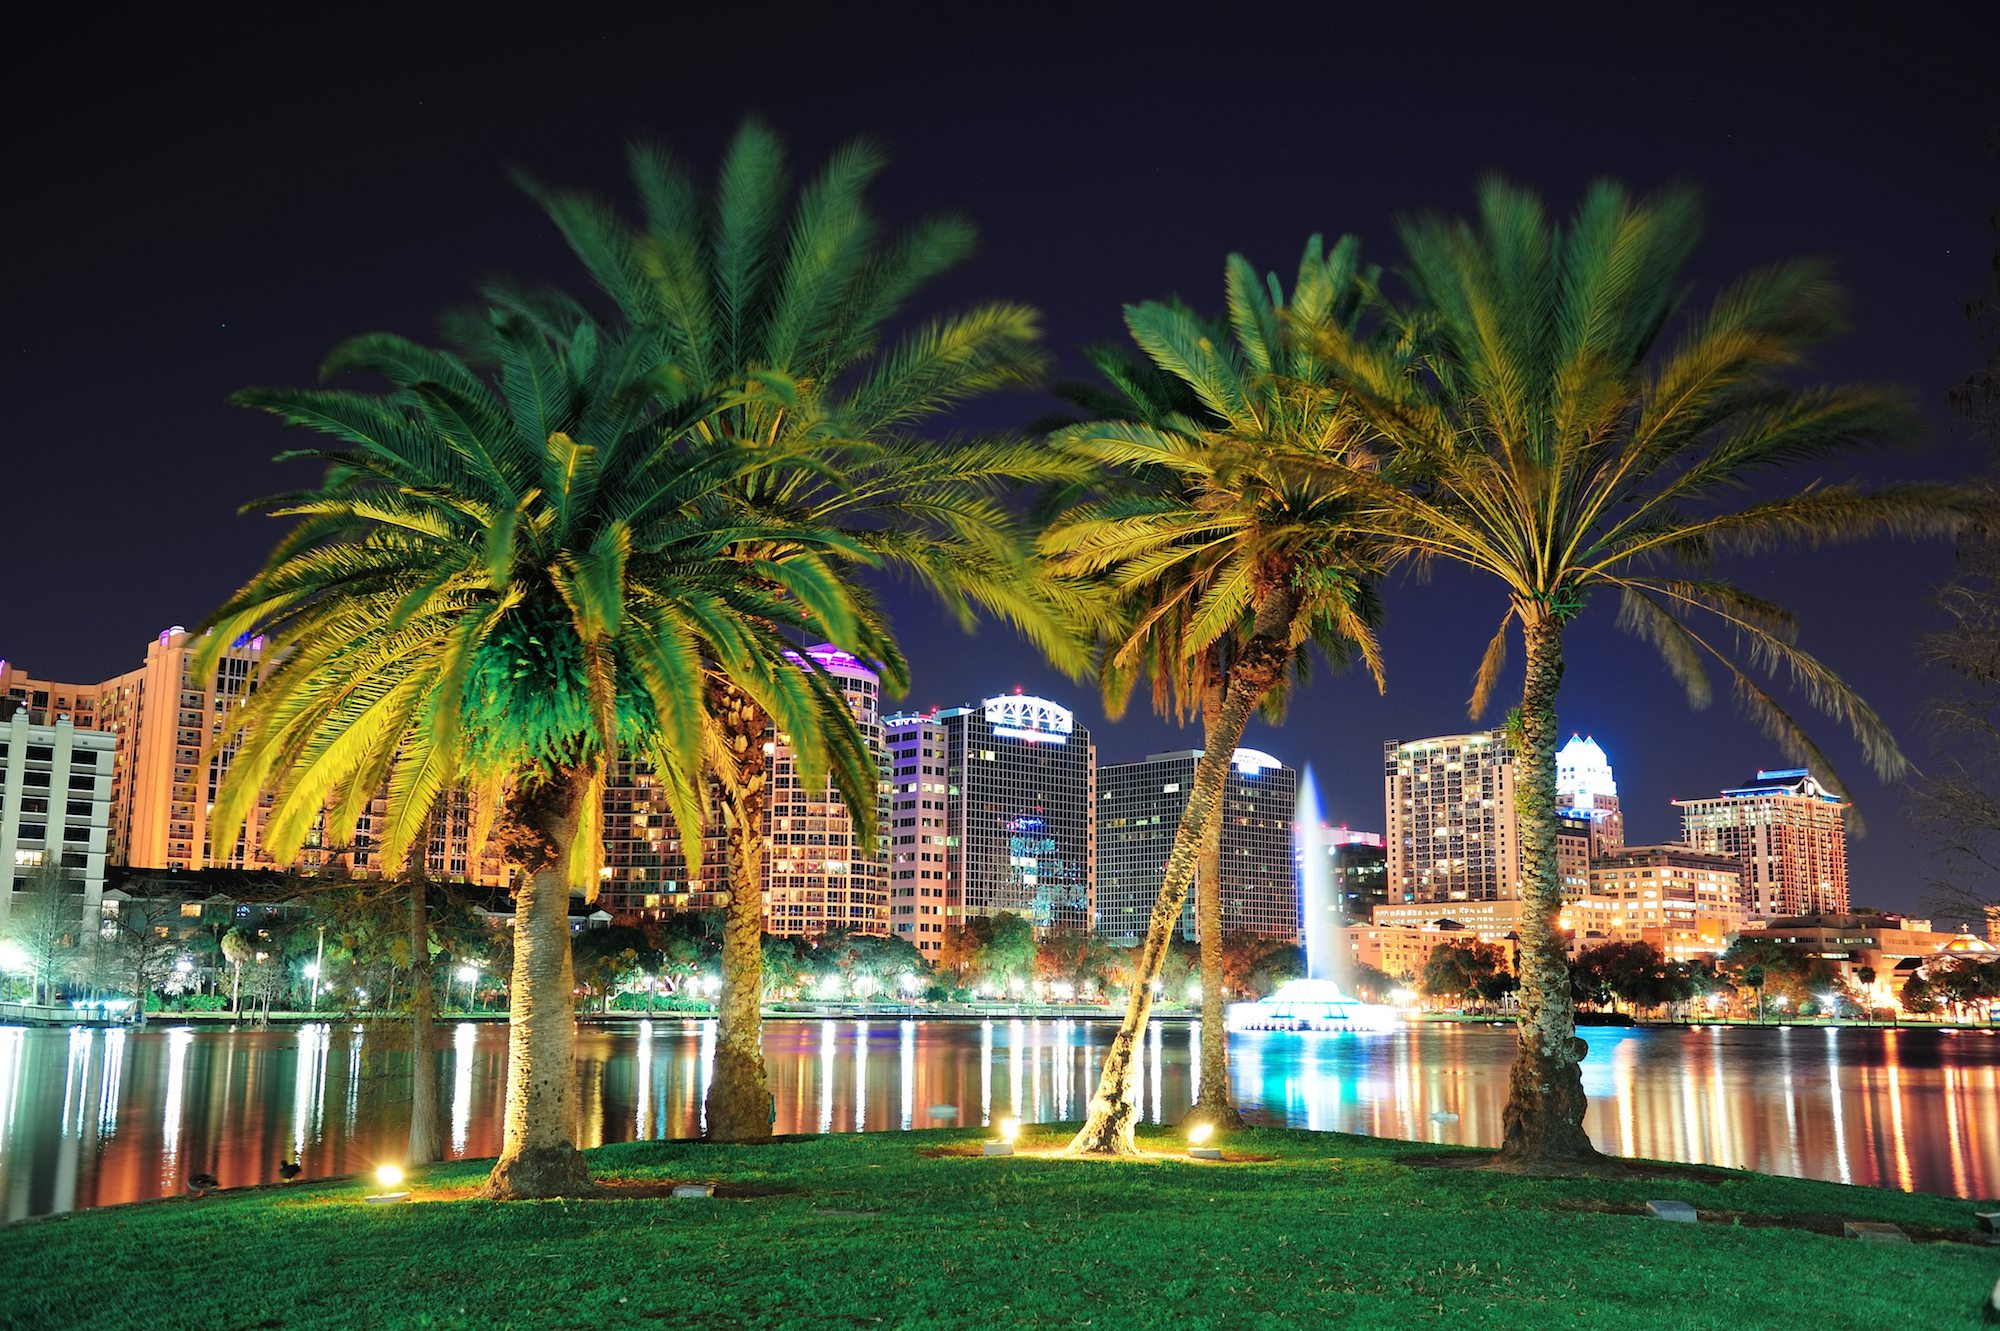 Lake Eola Park in Orlando, Florida